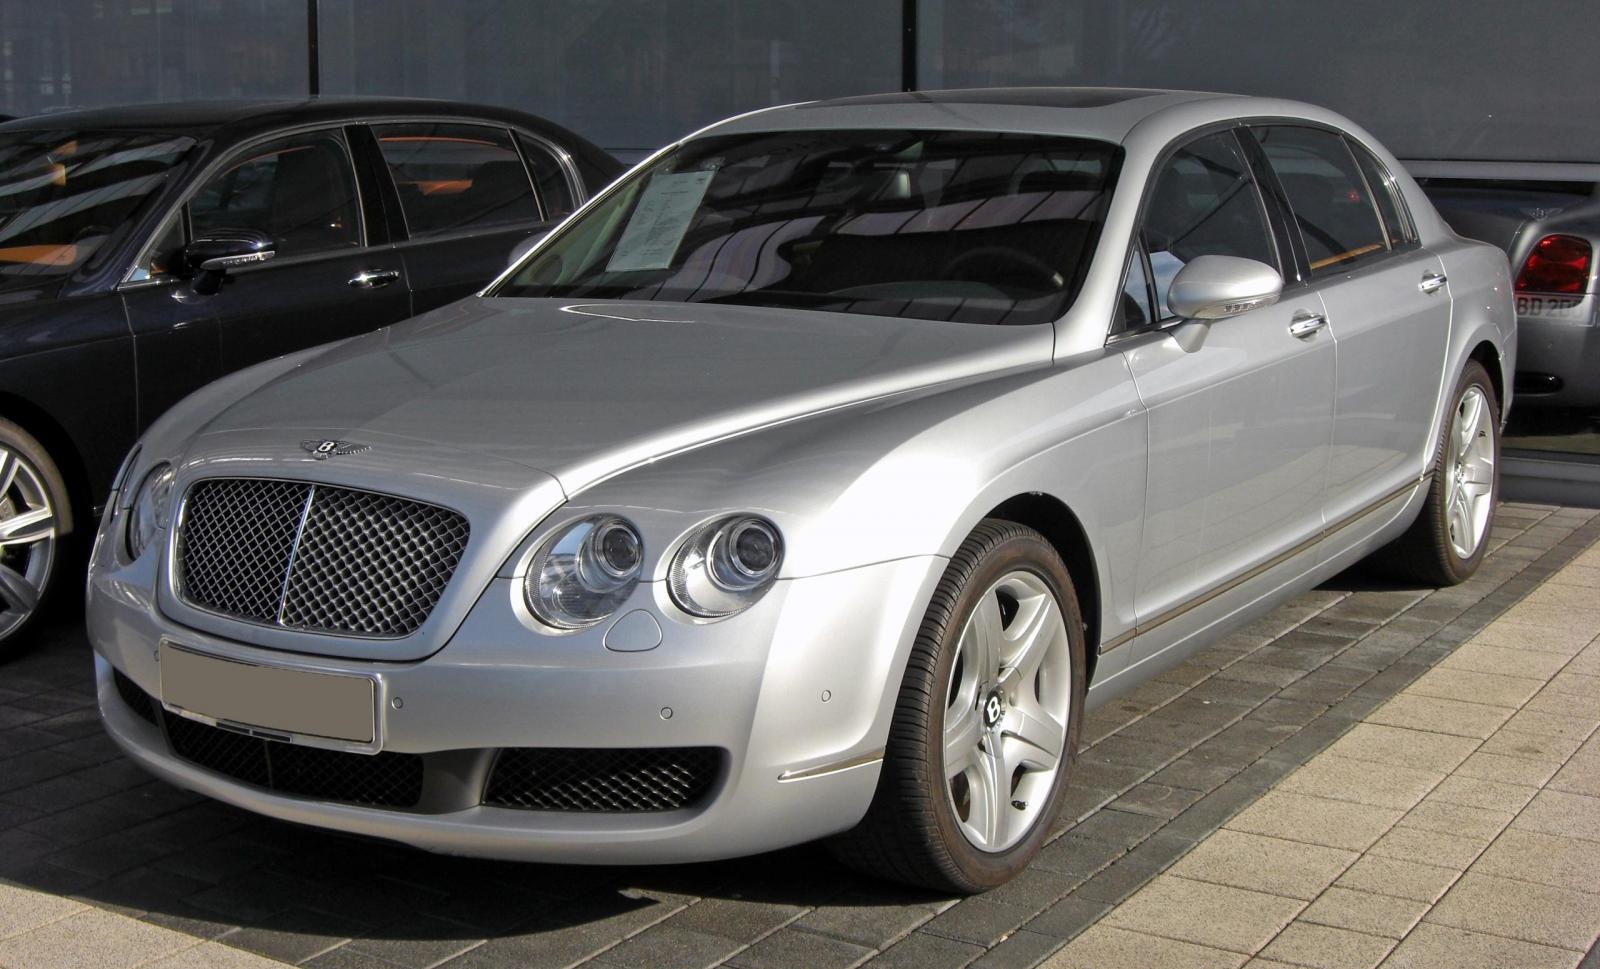 2010 bentley continental flying spur information and photos zombiedrive. Black Bedroom Furniture Sets. Home Design Ideas